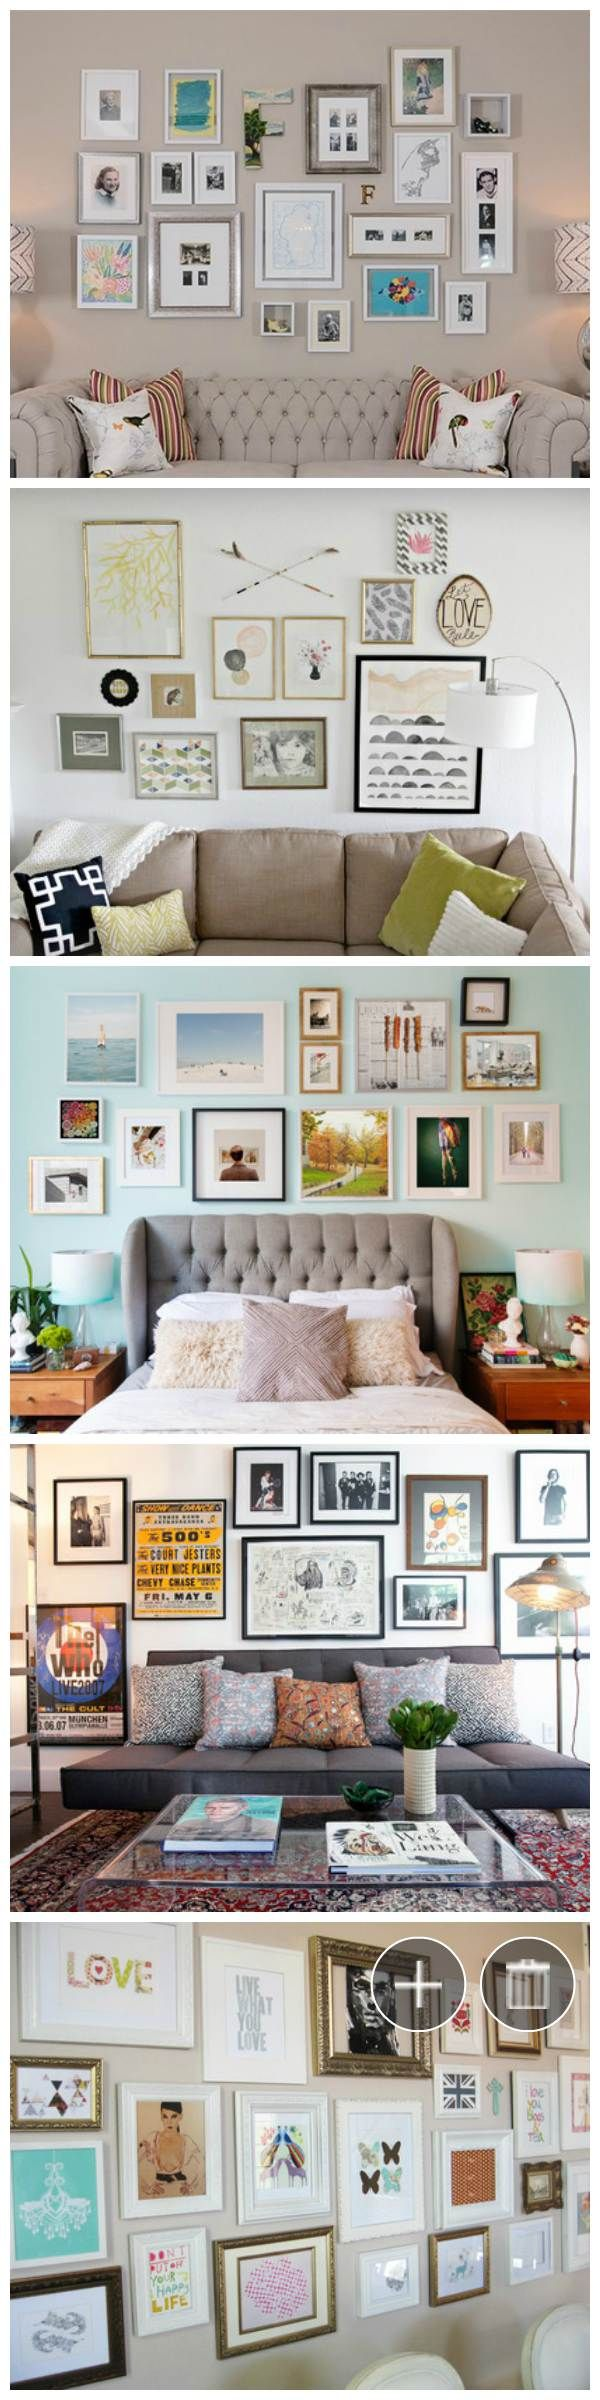 Gallery Wall Planner 105 best gallery wall ideas images on pinterest | wall ideas, free